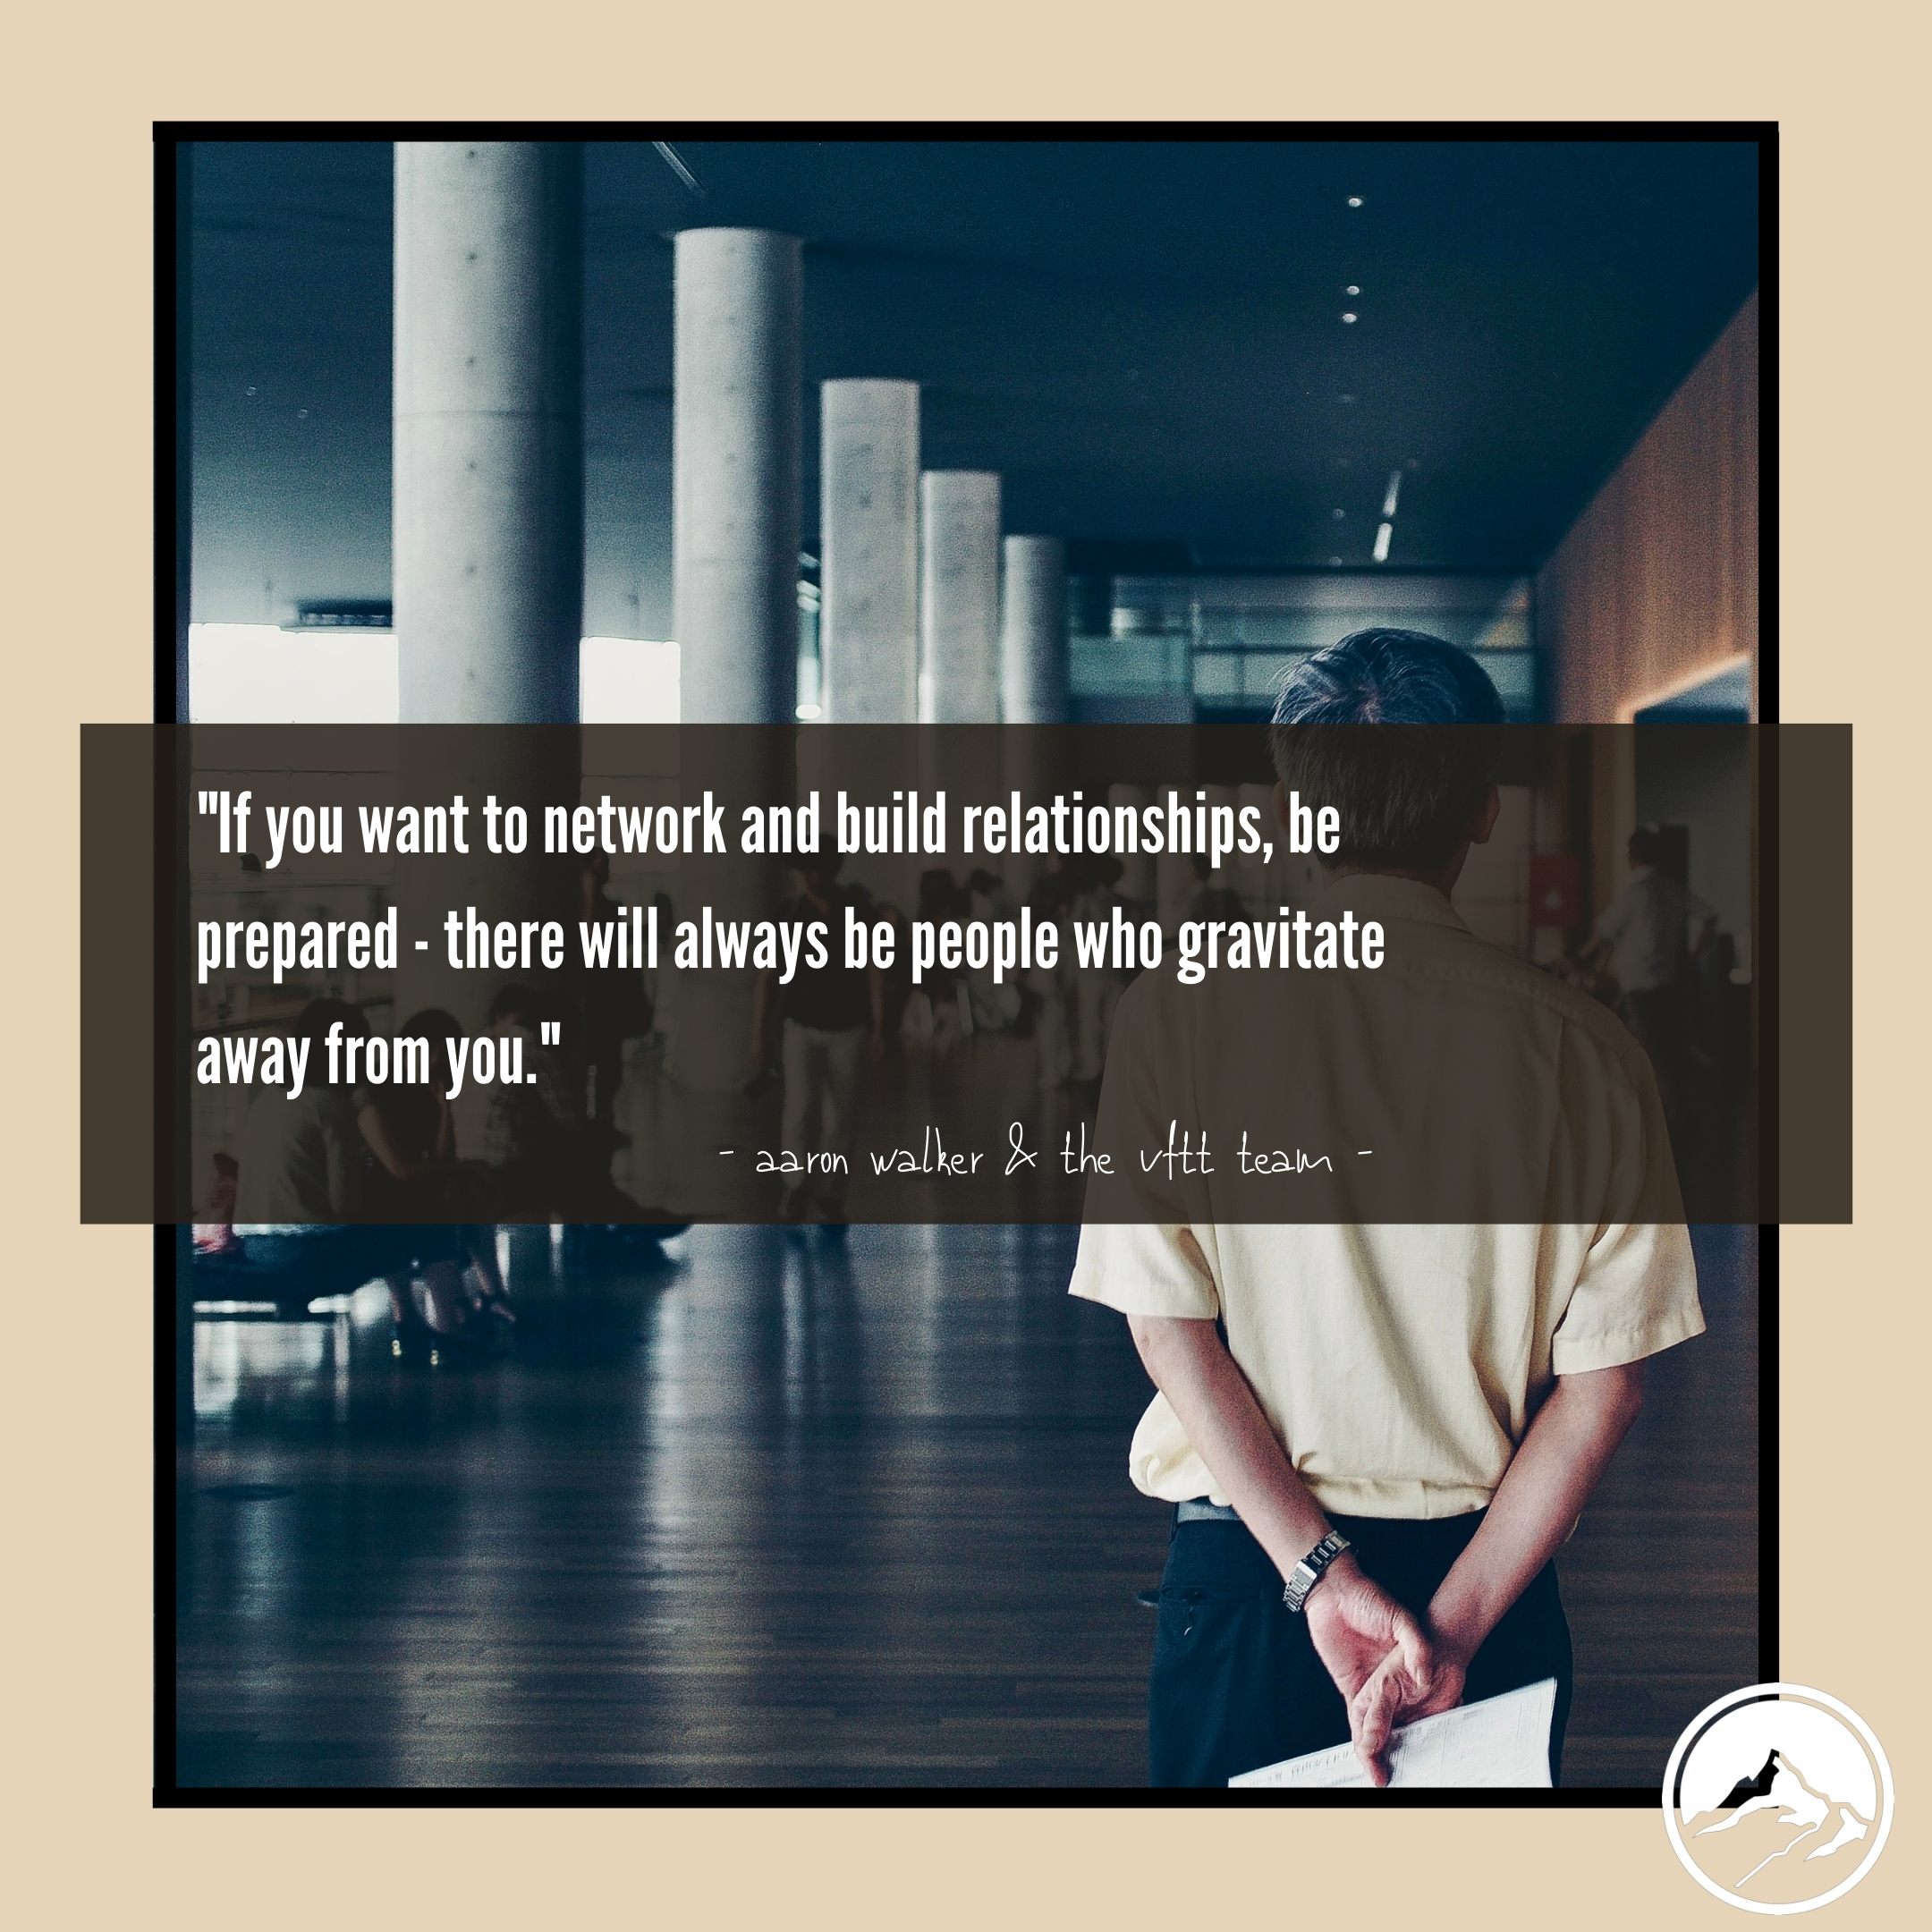 _If you want to network and build relationships, be prepared - there will always be people who gravitate away from you._